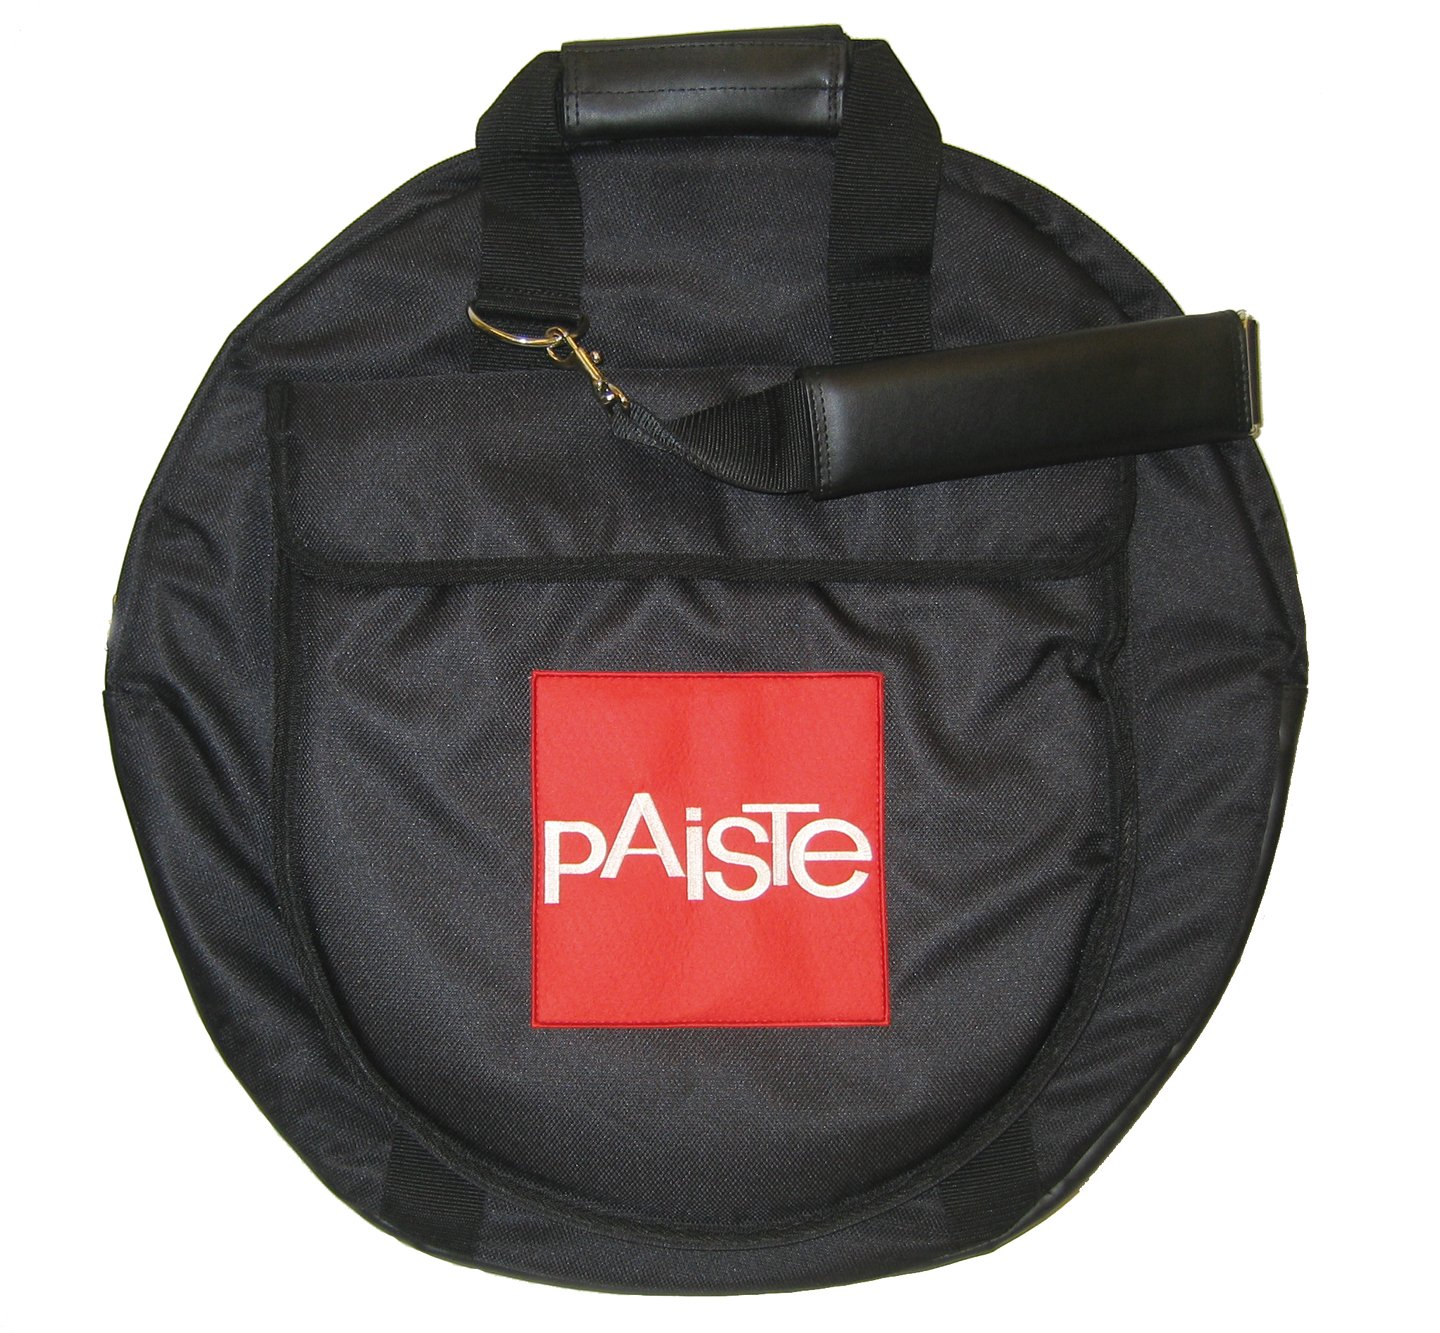 Paiste Cymbal Accessories Professional Black Cymbal Bag 22-inch Paiste America Inc. AC18522 491429022